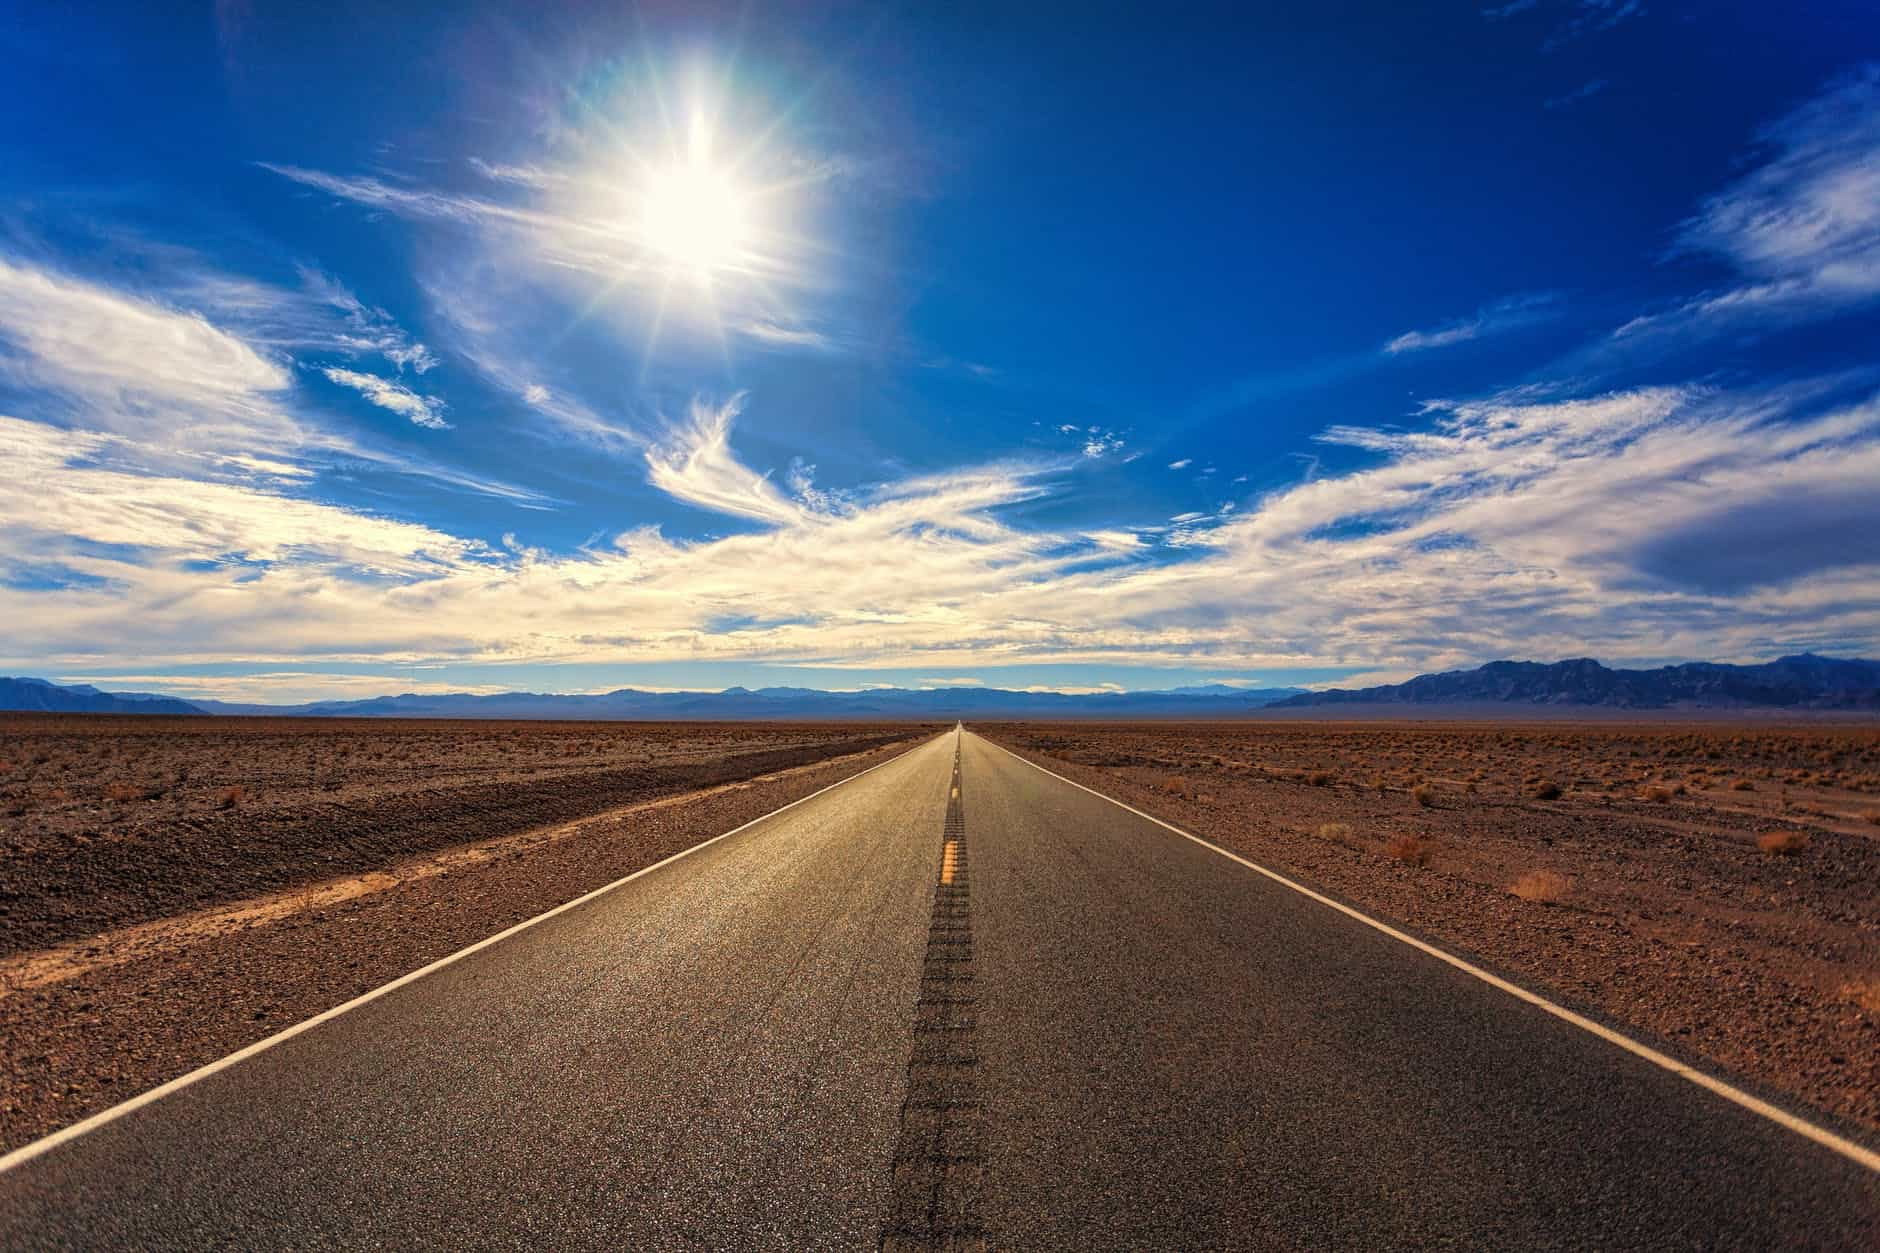 The open road. plan a journey by car, plan a car journey, planning driving trip. my planned road trips was the best.